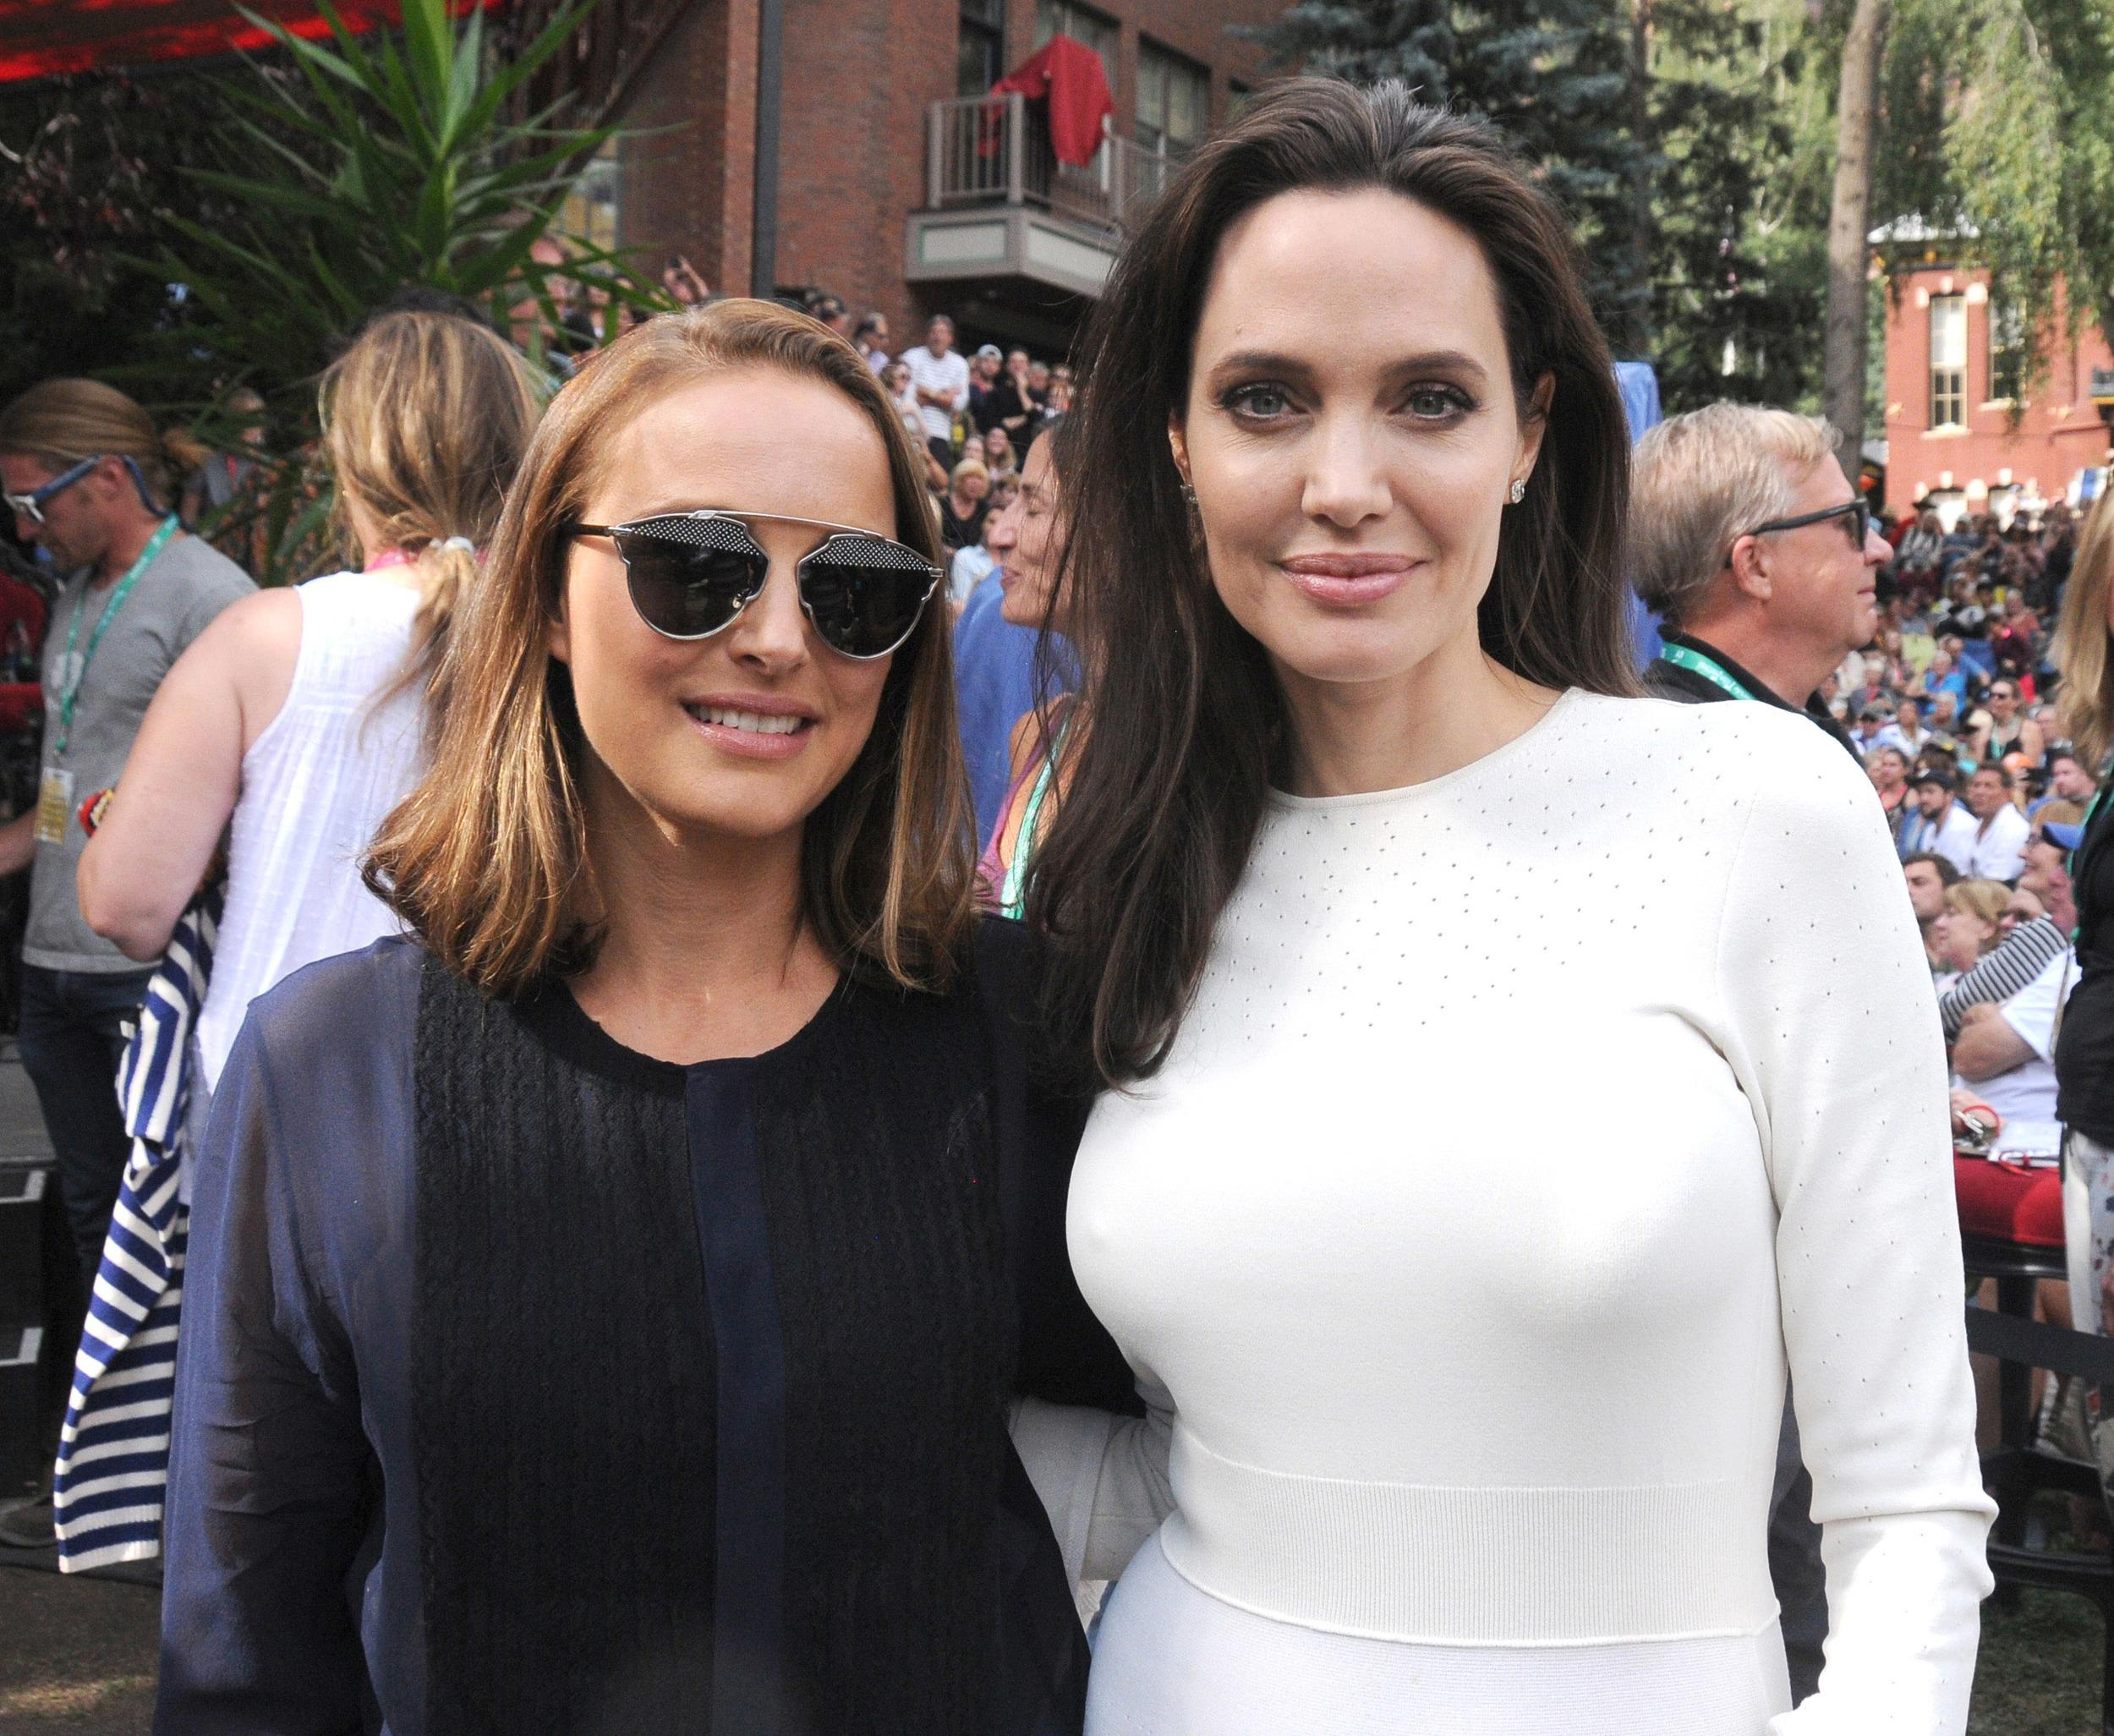 TELLURIDE, CO - SEPTEMBER 02:  Natalie Portman and Angelina Jolie attend the Telluride Film Festival 2017 on September 2, 2017 in Telluride, Colorado.  (Photo by Paul Best/Getty Images)